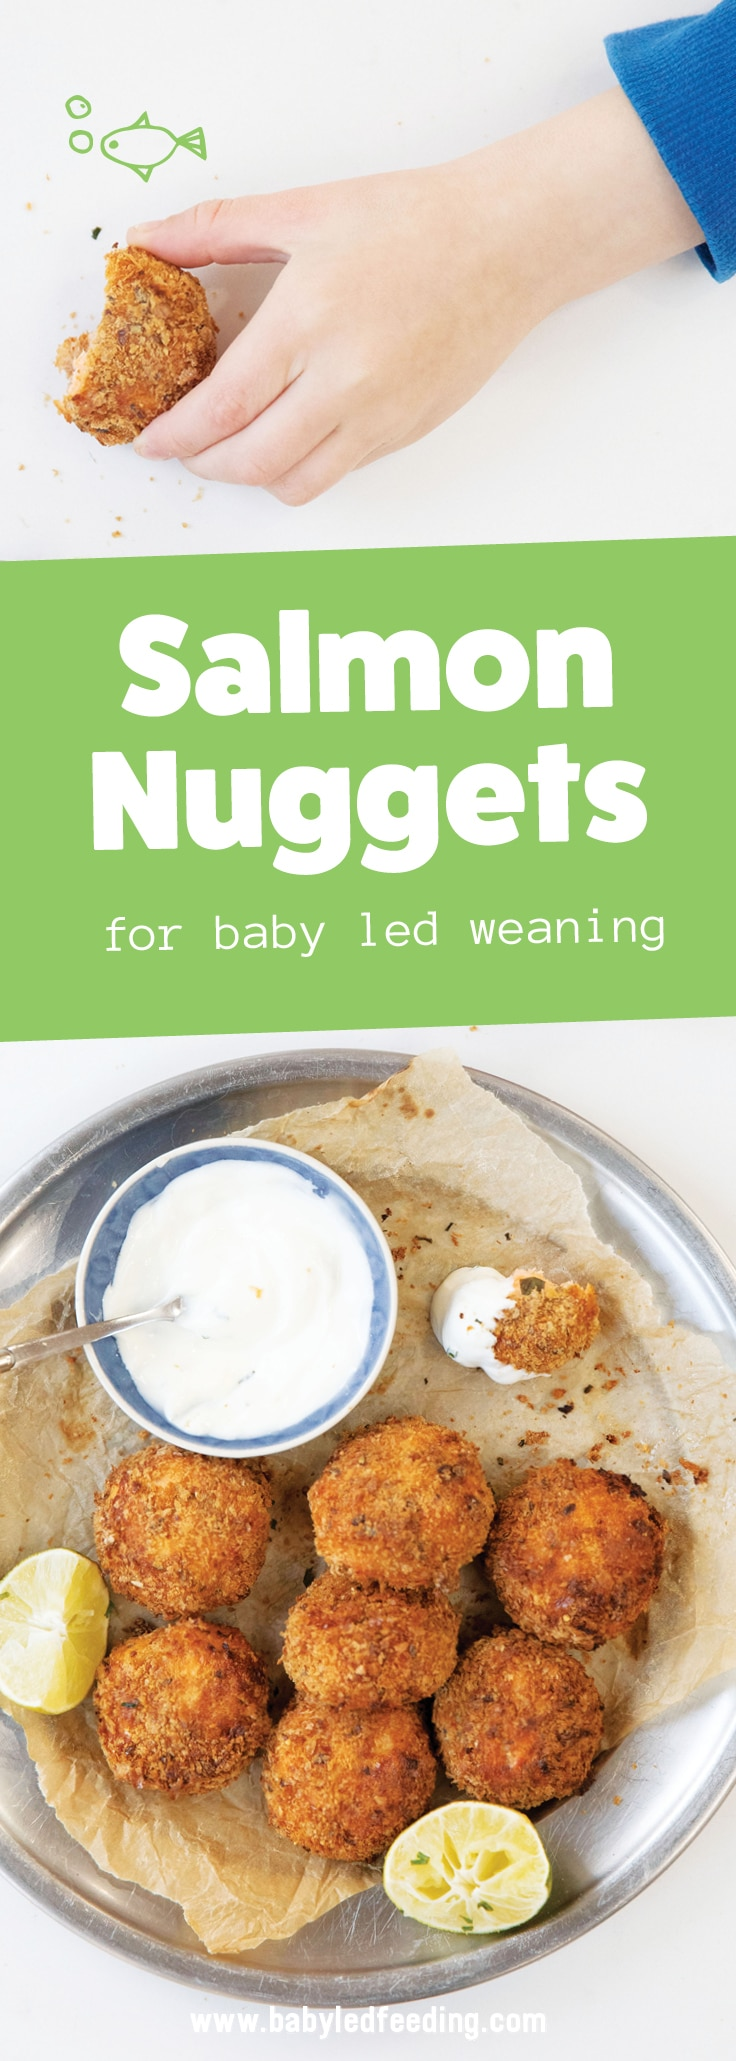 Easy Salmon Nugget Recipe for Baby Led Weaning and Toddlers. This healthy recipe for kids is loaded with omega 3s, vitamin A, fiber, and vitamin K! Fresh salmon, nutrient packed spinach, and whole grain bread crumbs with a yogurt lime dipping sauce make this finger food an easy lunch or dinner choice for your little ones. Freezer friendly, low sodium, and free from refined sugars! It's like a homemade fish stick but WAY better!